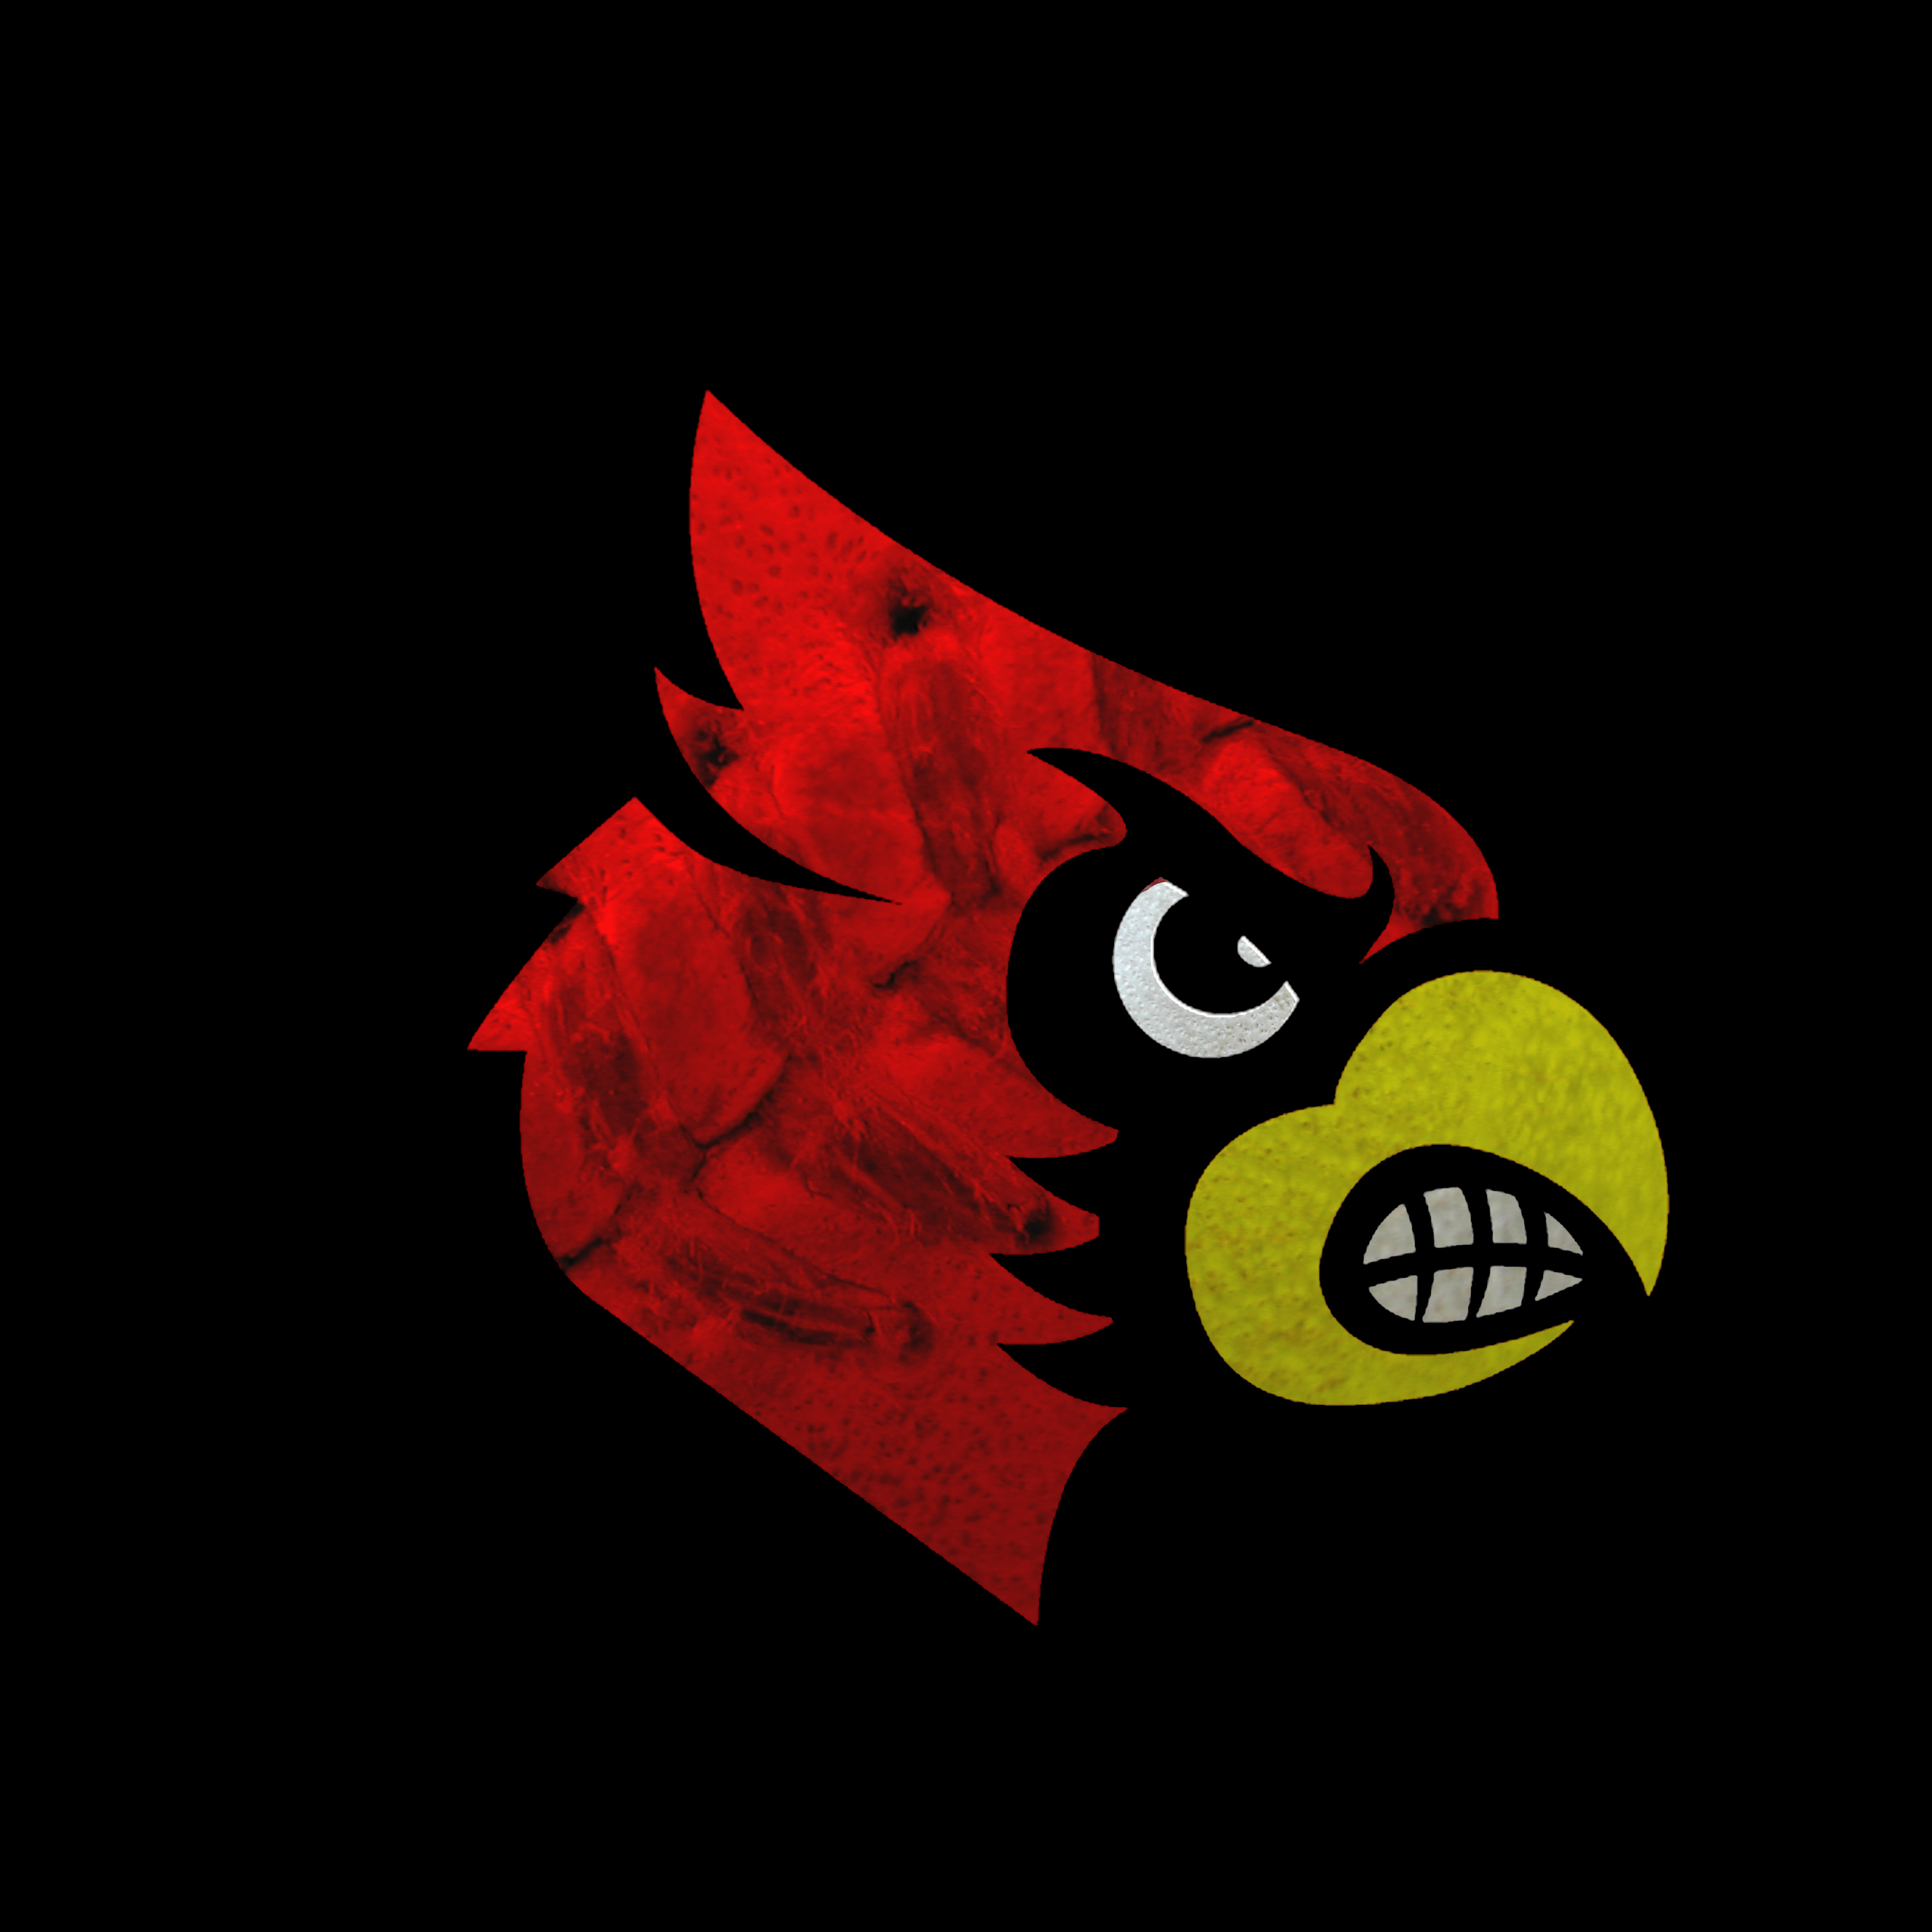 Uofl Card Game Wallpaper Game Wallpapers Collection 5000x5000